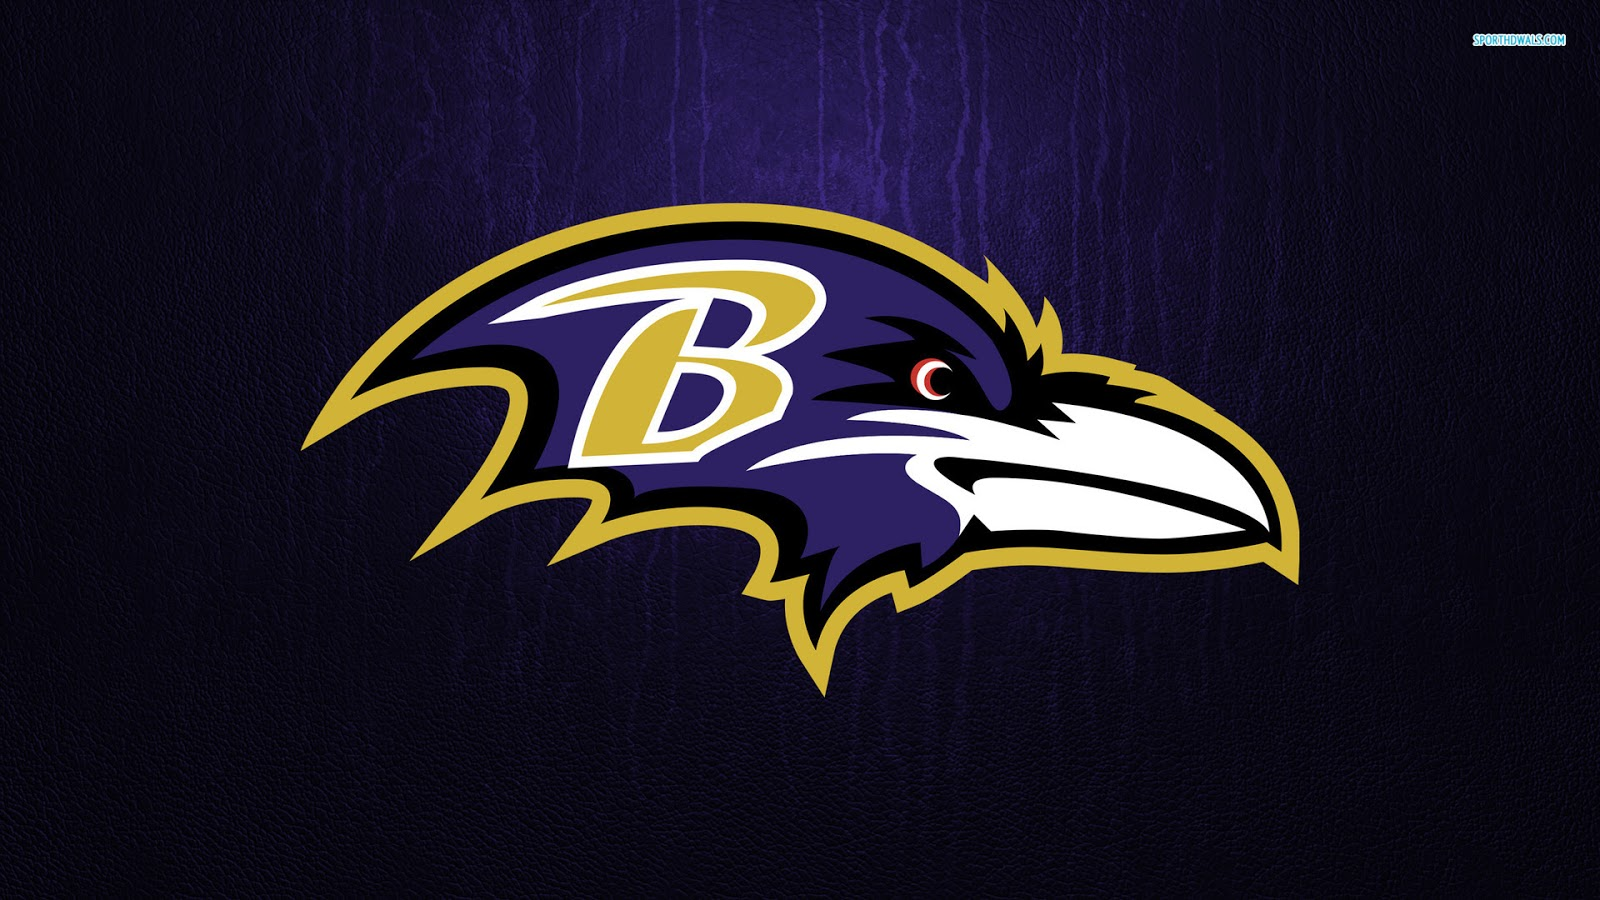 Baltimore Ravens - Free NFL Wallpapers   Free NFL Wallpapers